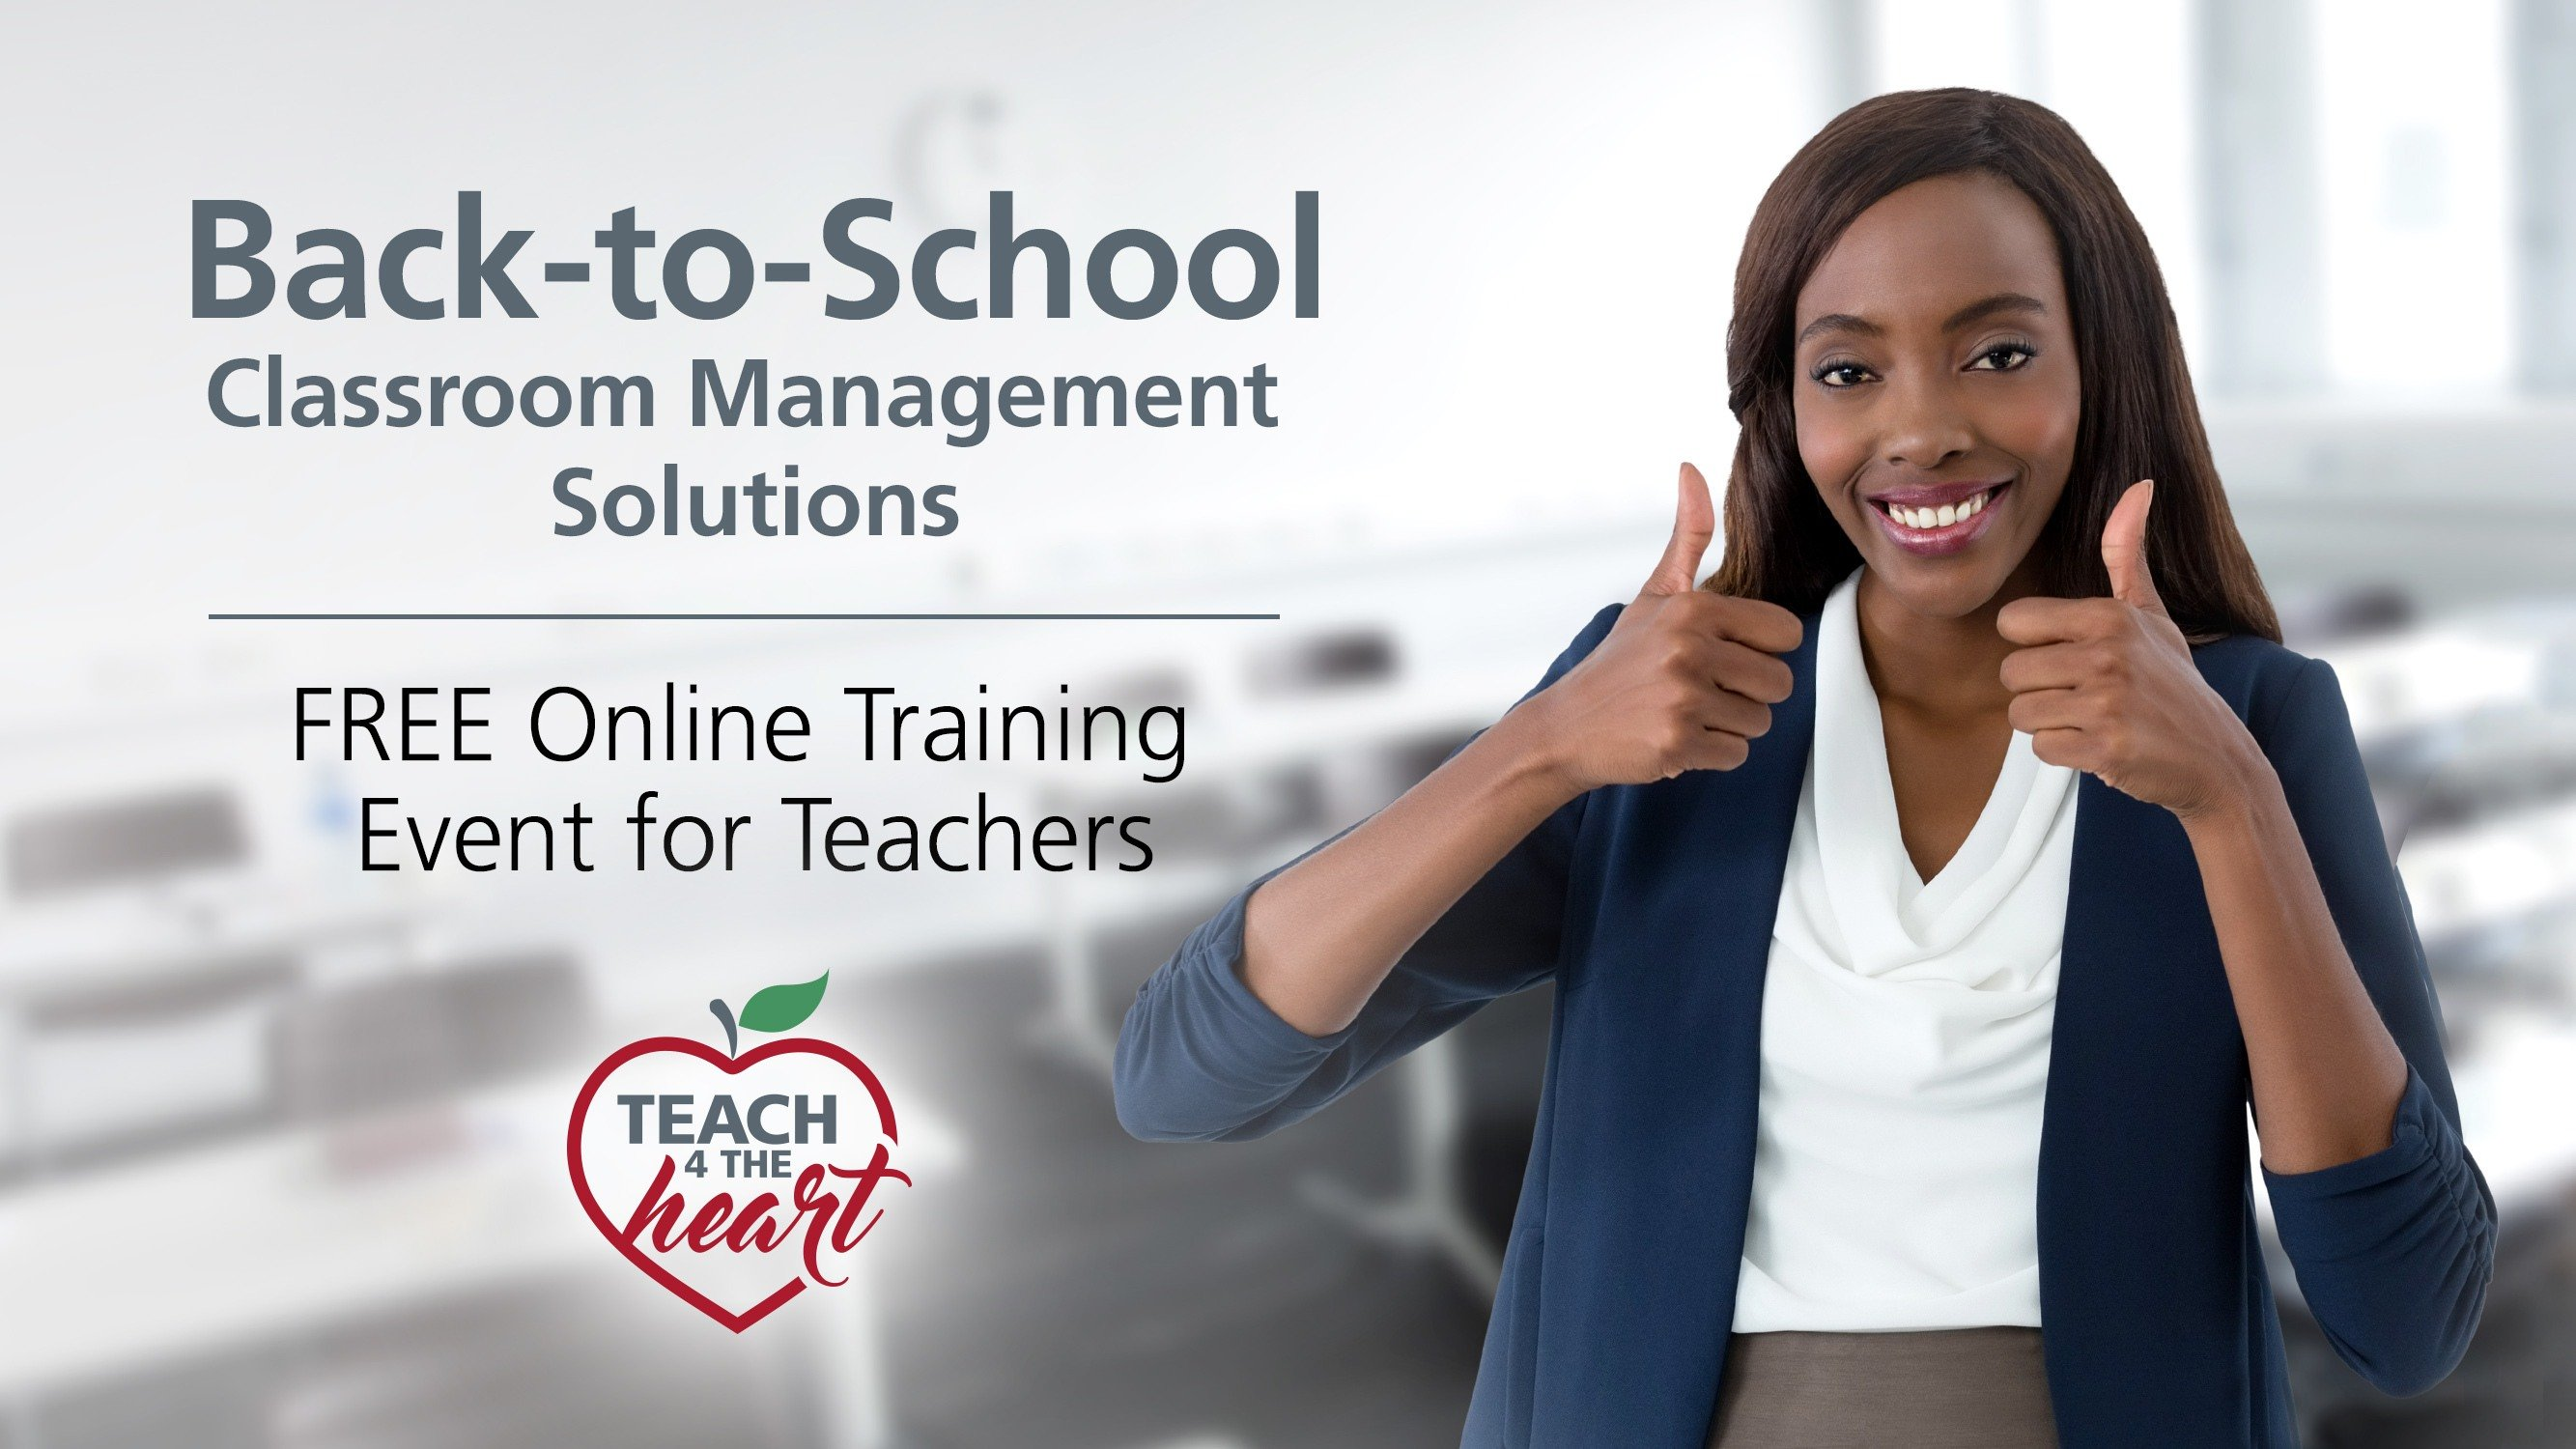 Back to School Classroom Management Solutions training for teachers